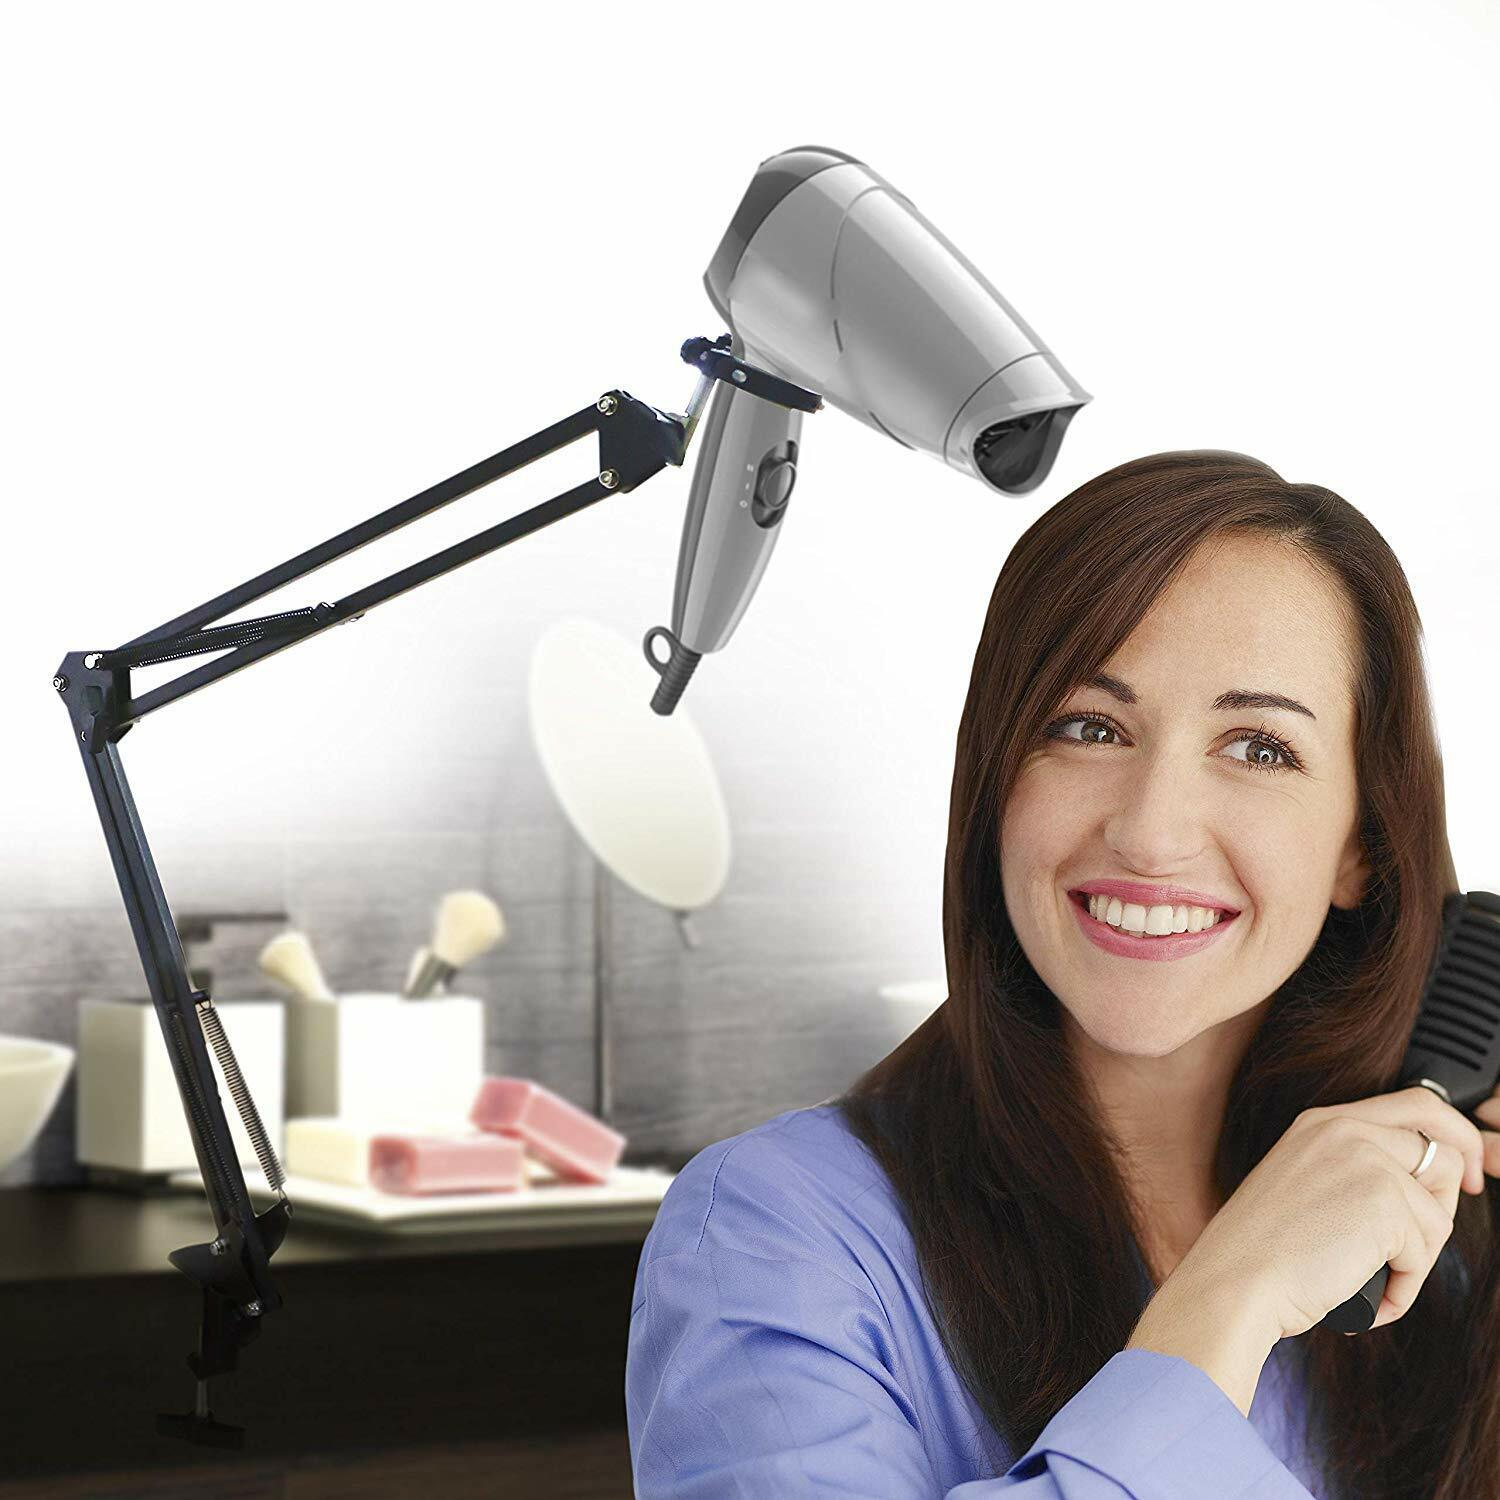 Hair Dryer Holder, Hands Free Dryer Stand for Hair Styling and Storage Hair Care & Styling